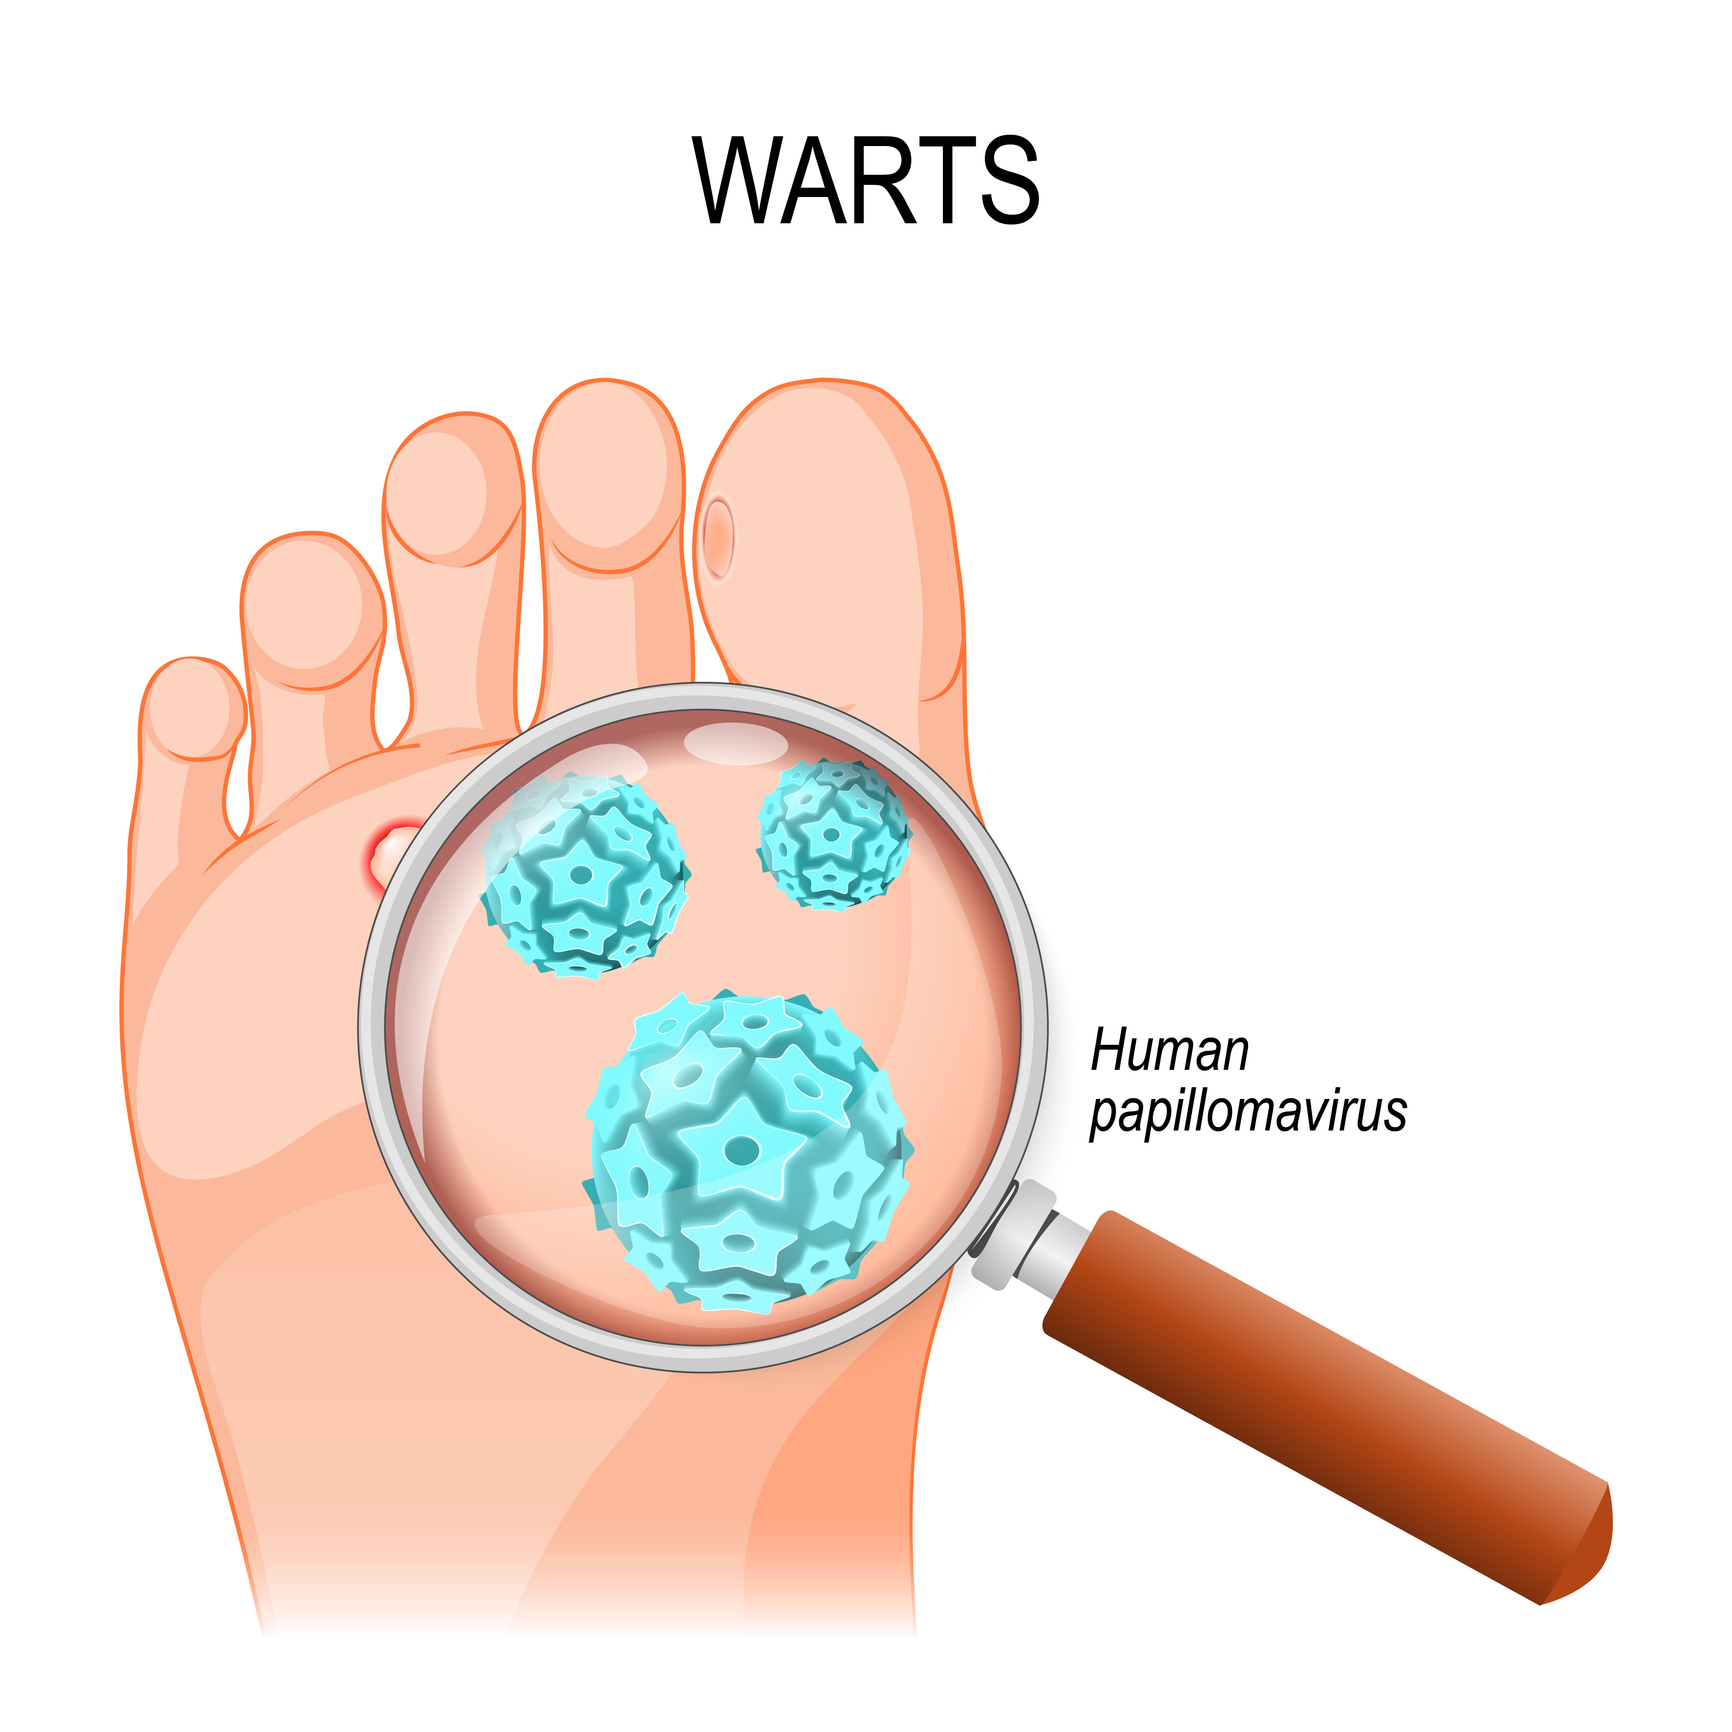 hpv foot warts treatment)